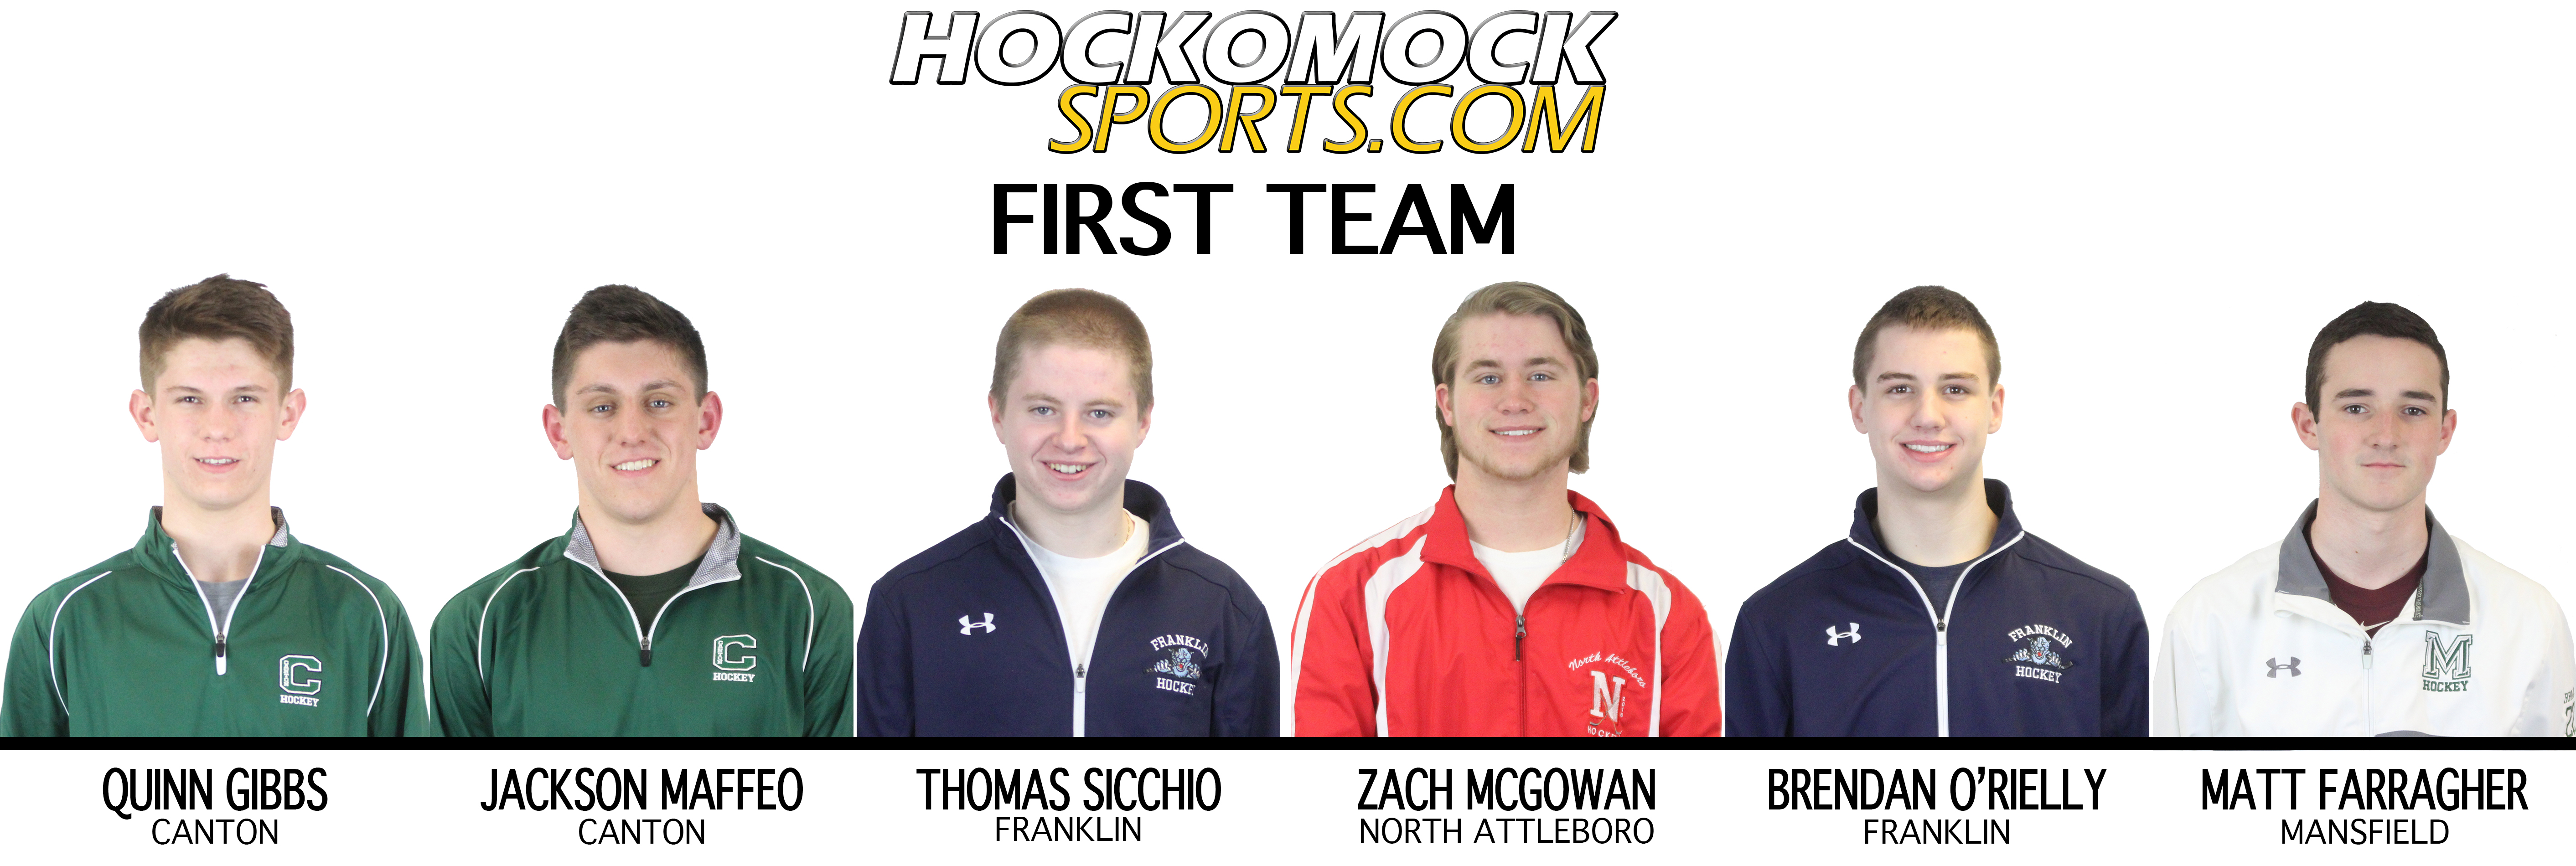 these Awards are selected strictly by the Hockomock Sports .com staff